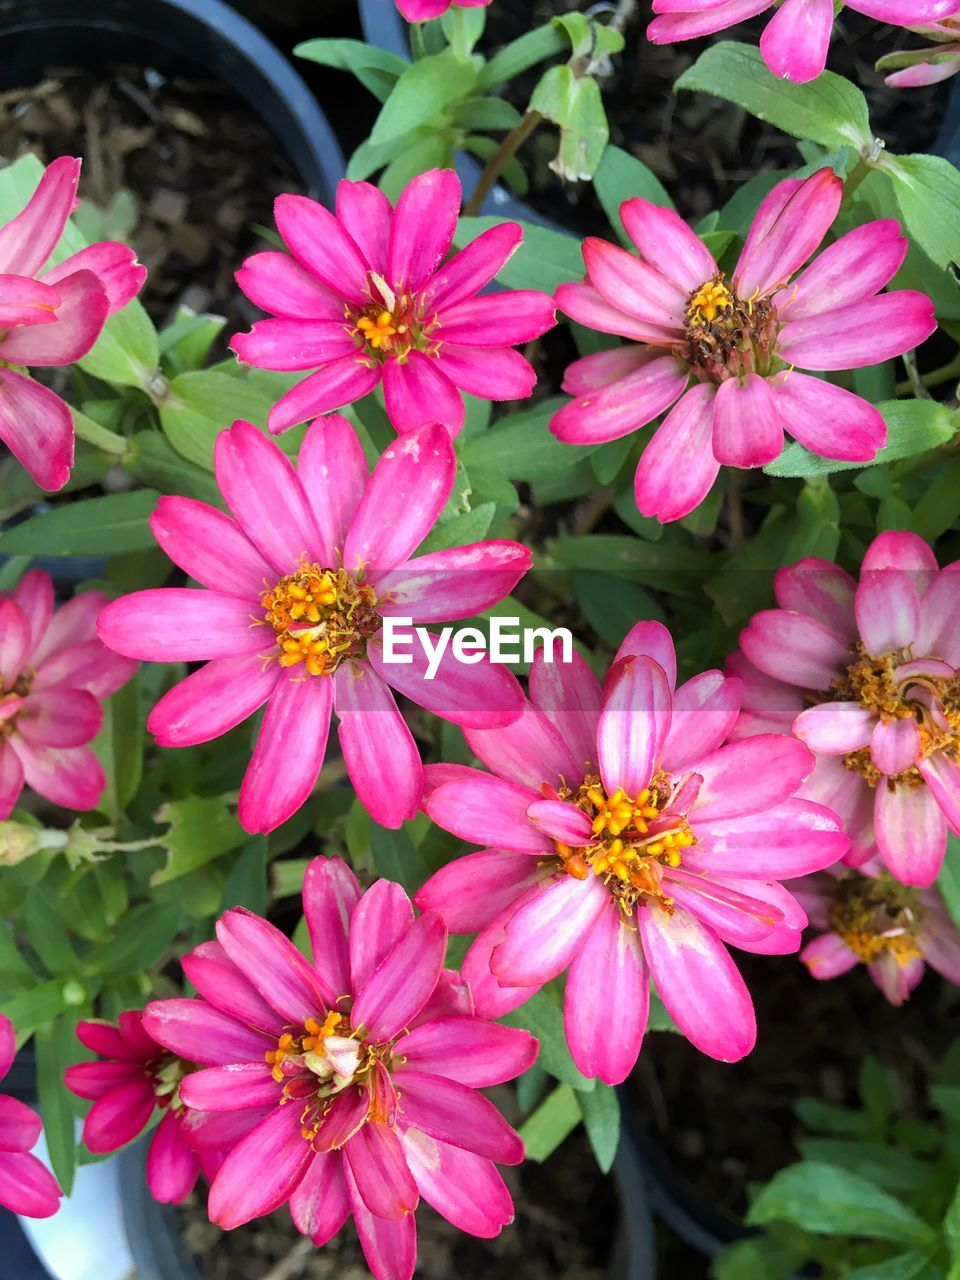 flower, petal, beauty in nature, growth, flower head, fragility, freshness, nature, blooming, pink color, plant, no people, outdoors, day, osteospermum, close-up, zinnia